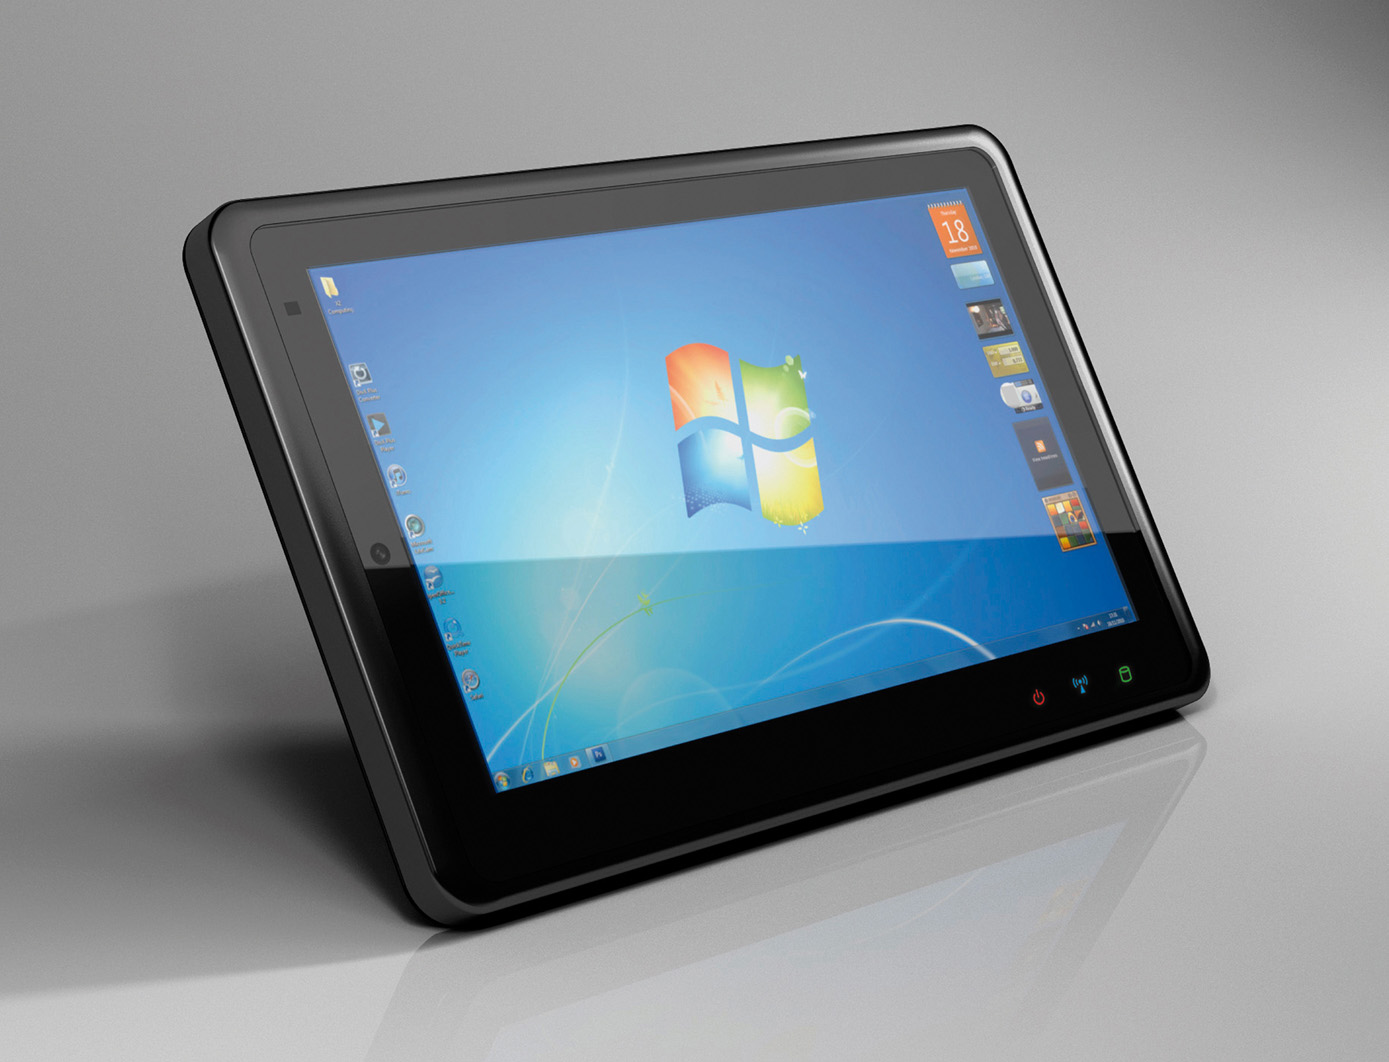 Tablet Pc New Tablet Pc Unveiled At Ces Computing News In Africa